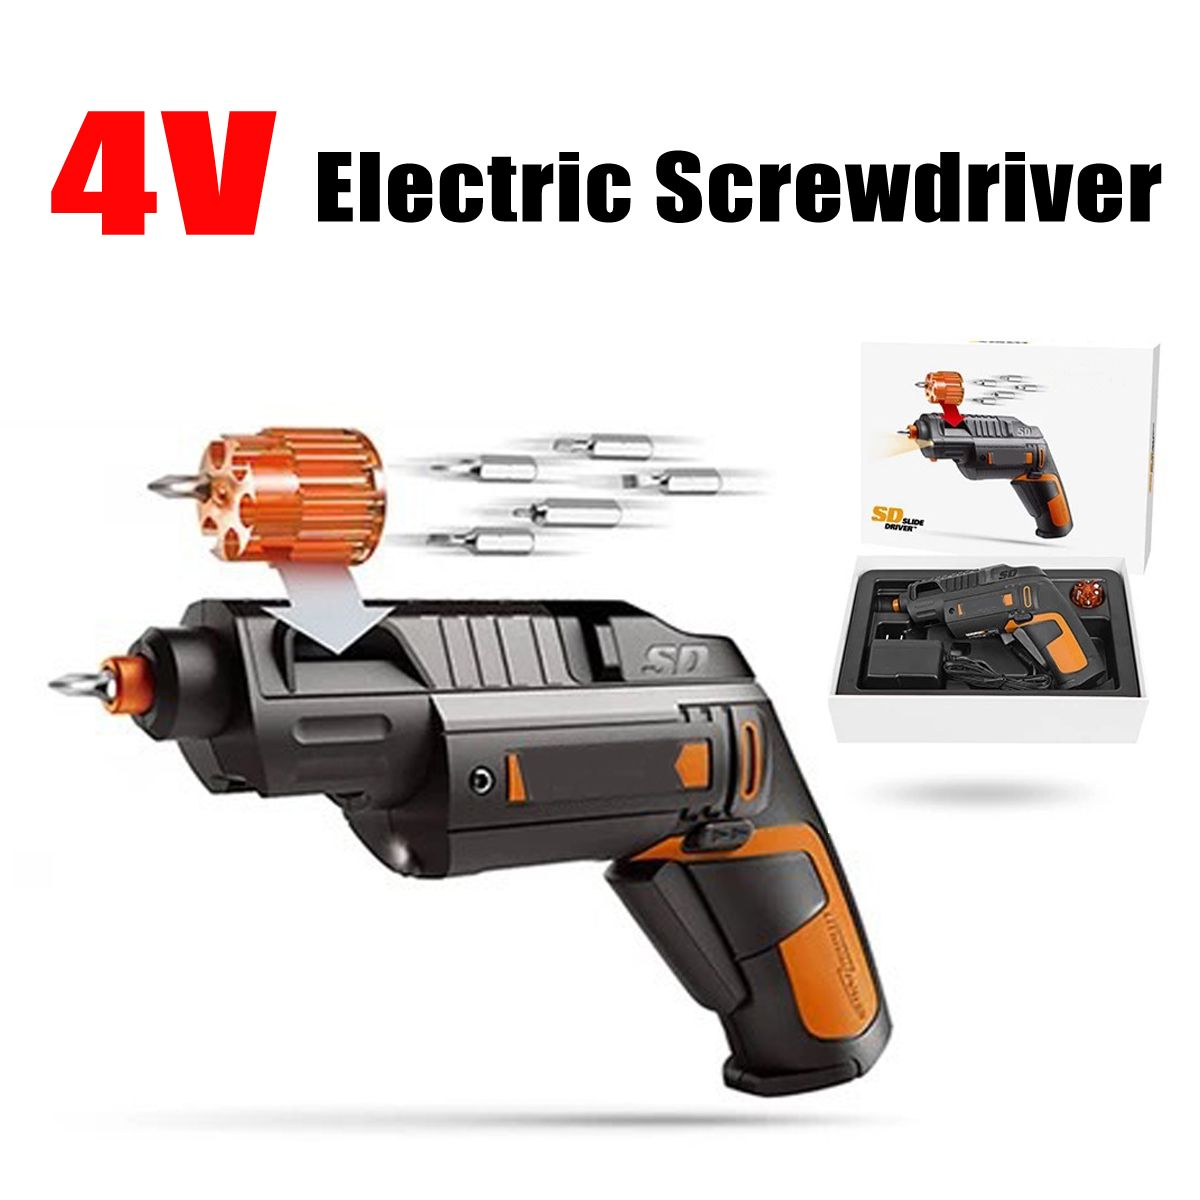 4V Electric Screwdriver With Li-Ion Battery Rechargeable Cordless Household Multifunction For WORX Electric Drill Hand Tool